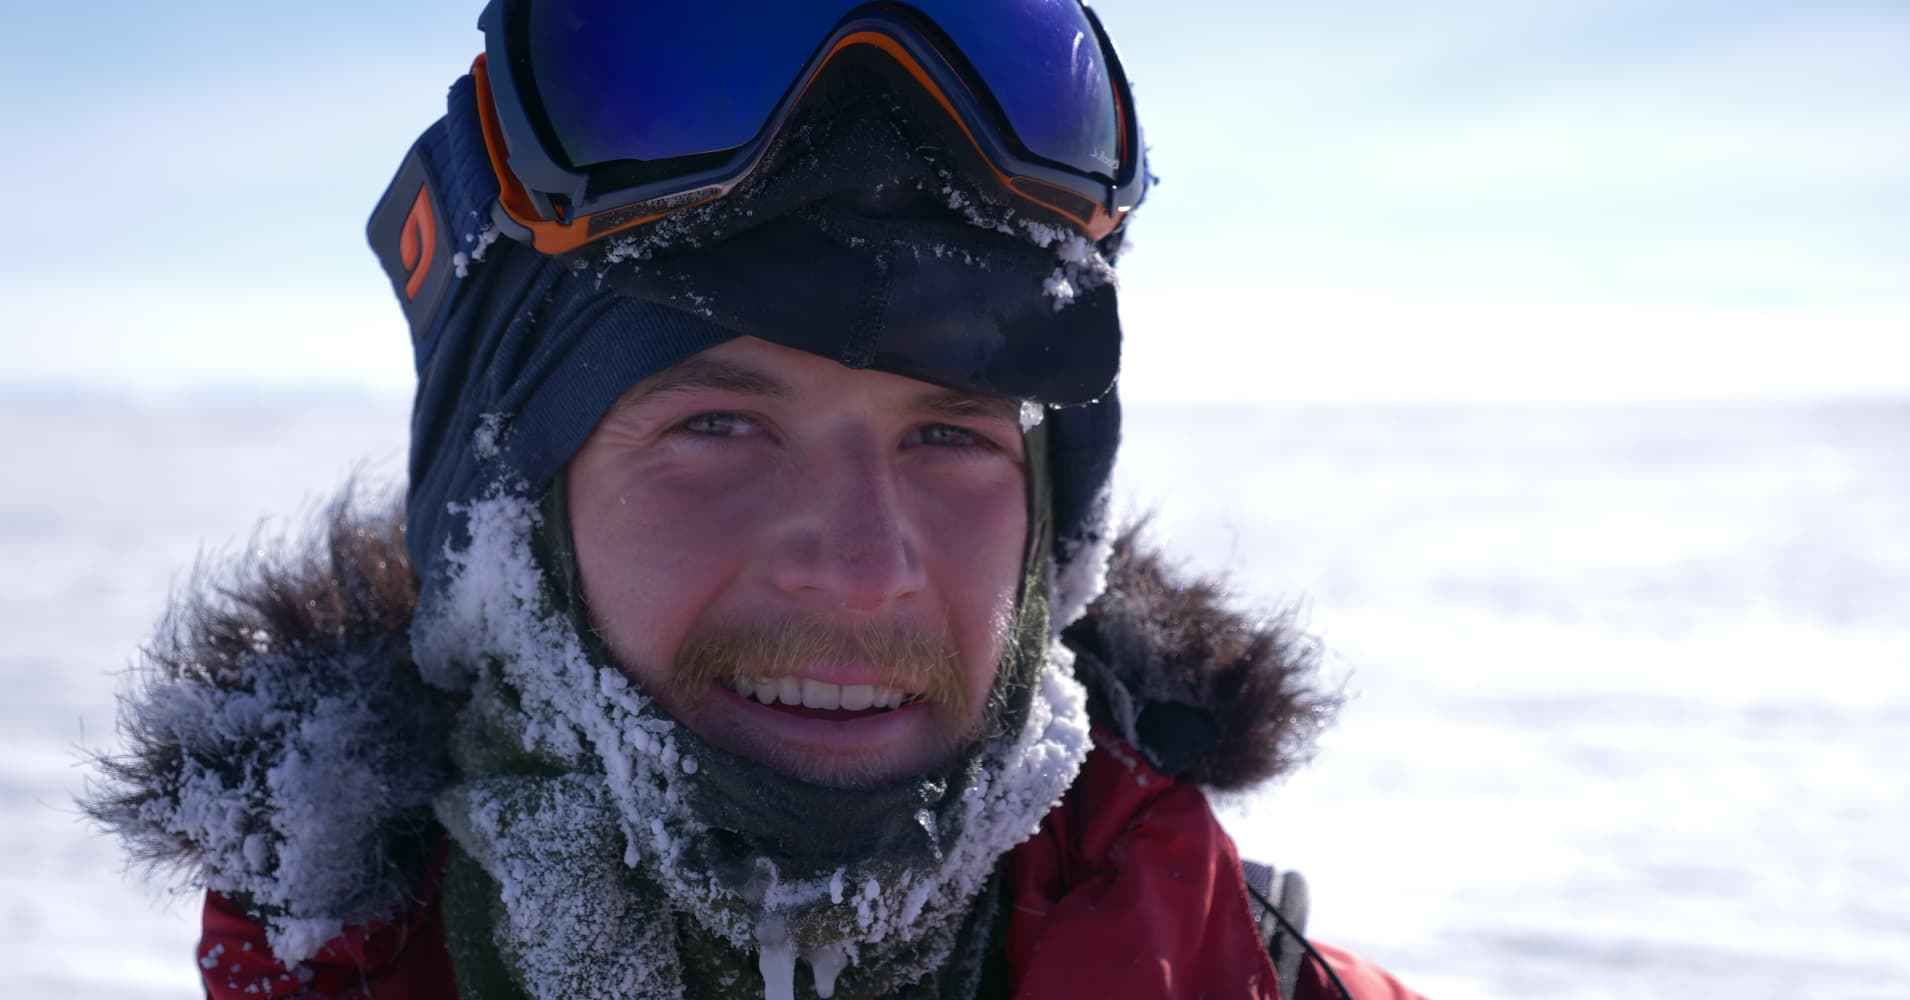 Barney Swan skied Antarctica with clean energy to fight climate change